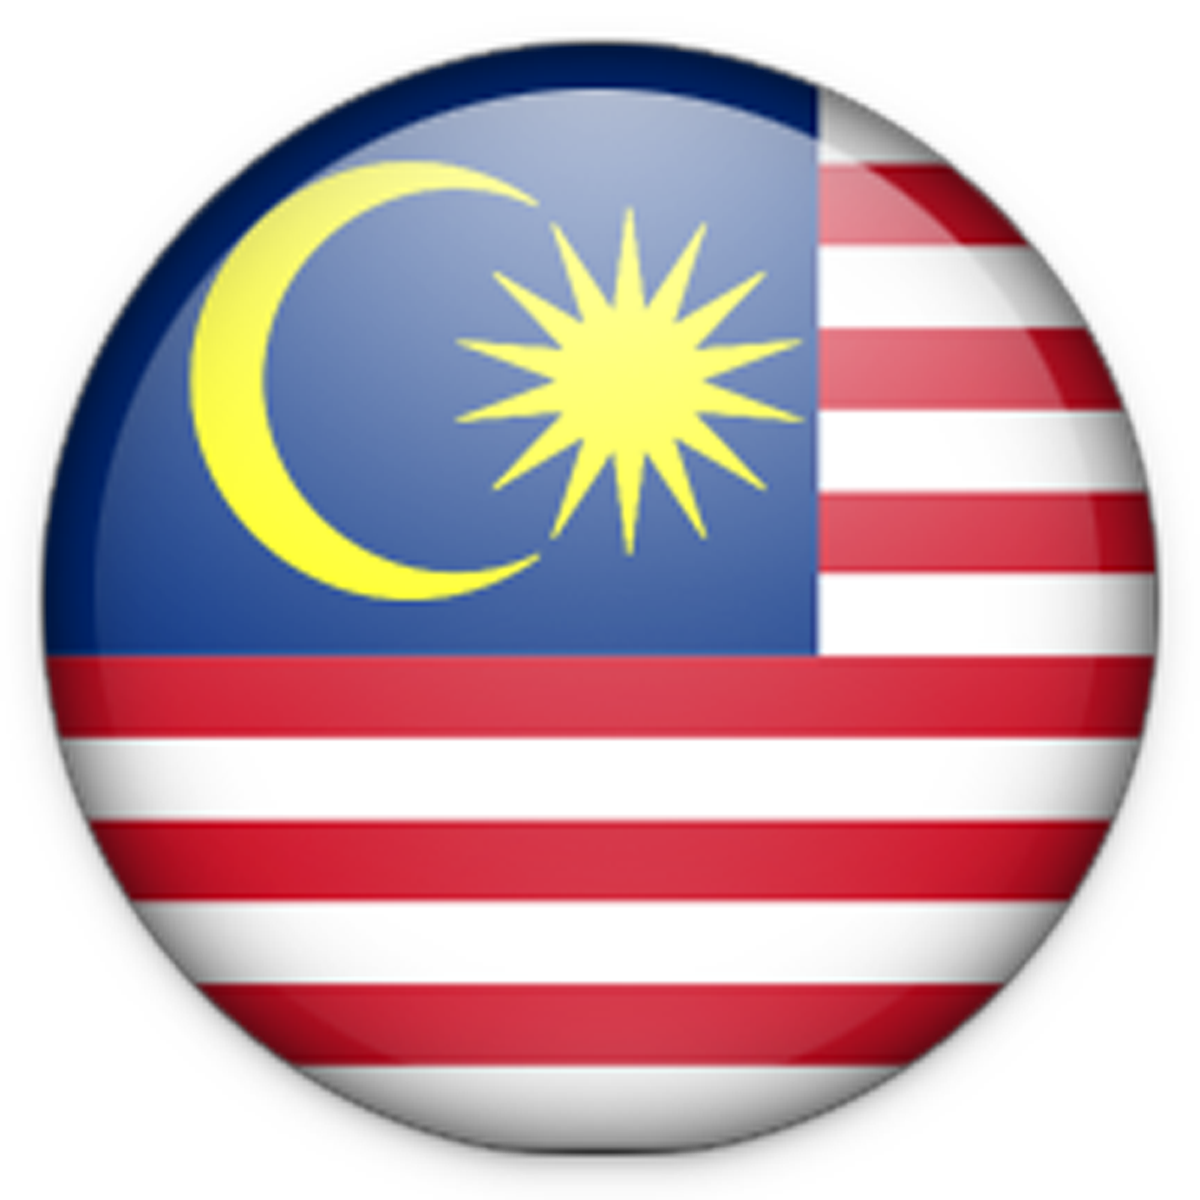 Wallpapers Flag Of Malaysia Png image #41826